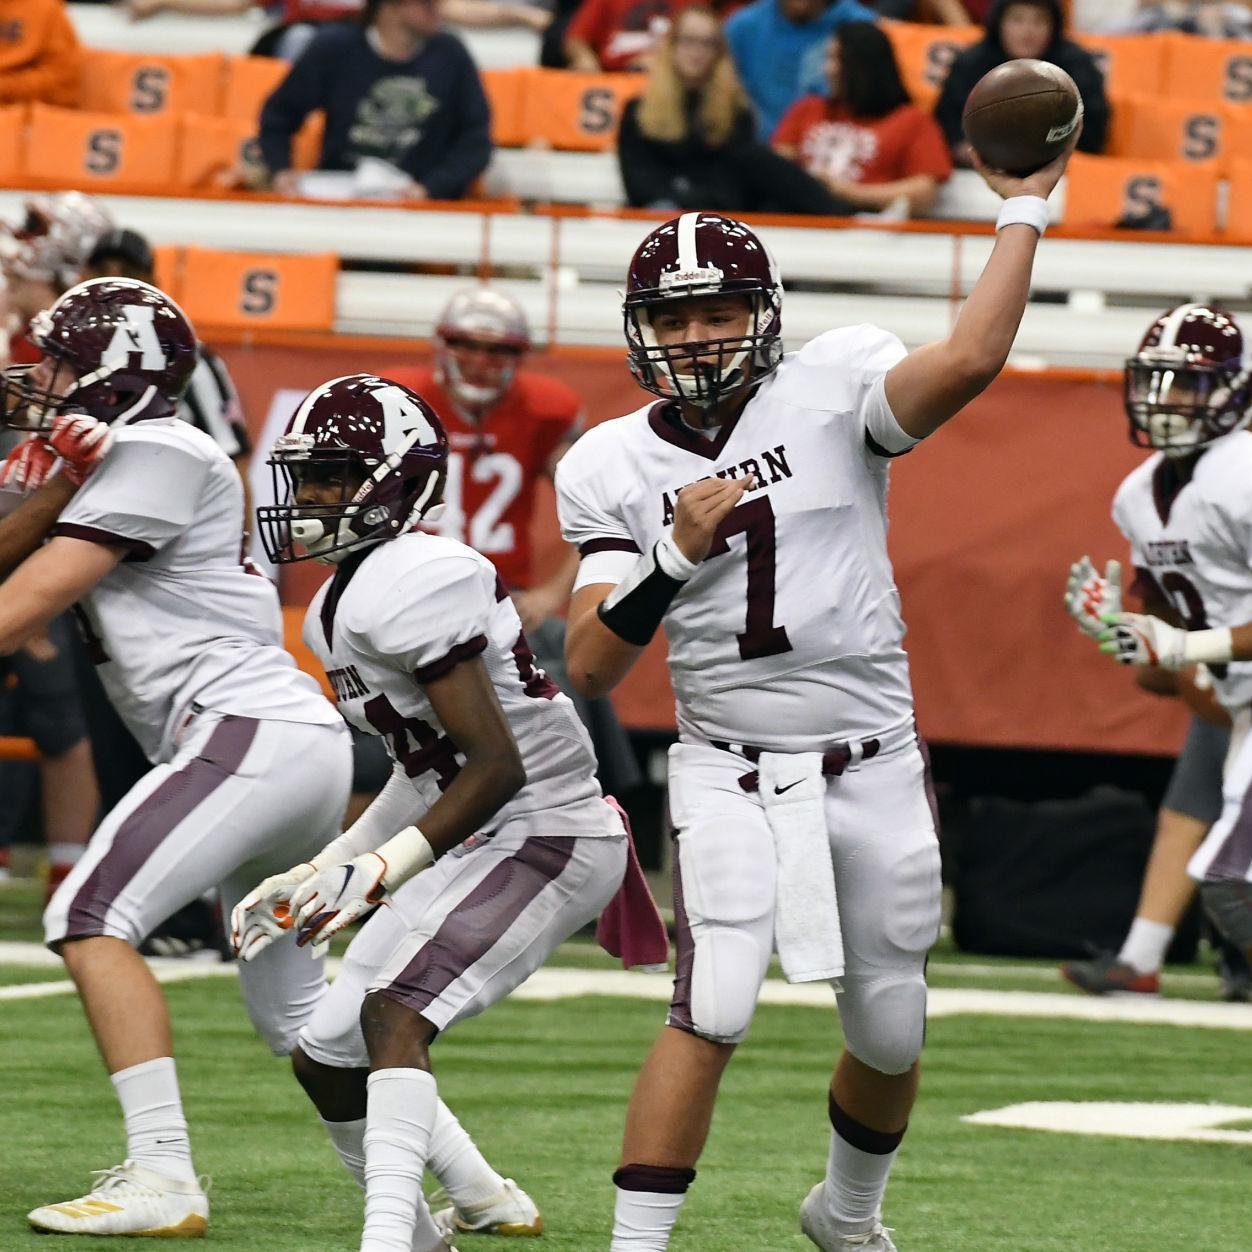 A Second Life After Loss In Section Final Auburn Football